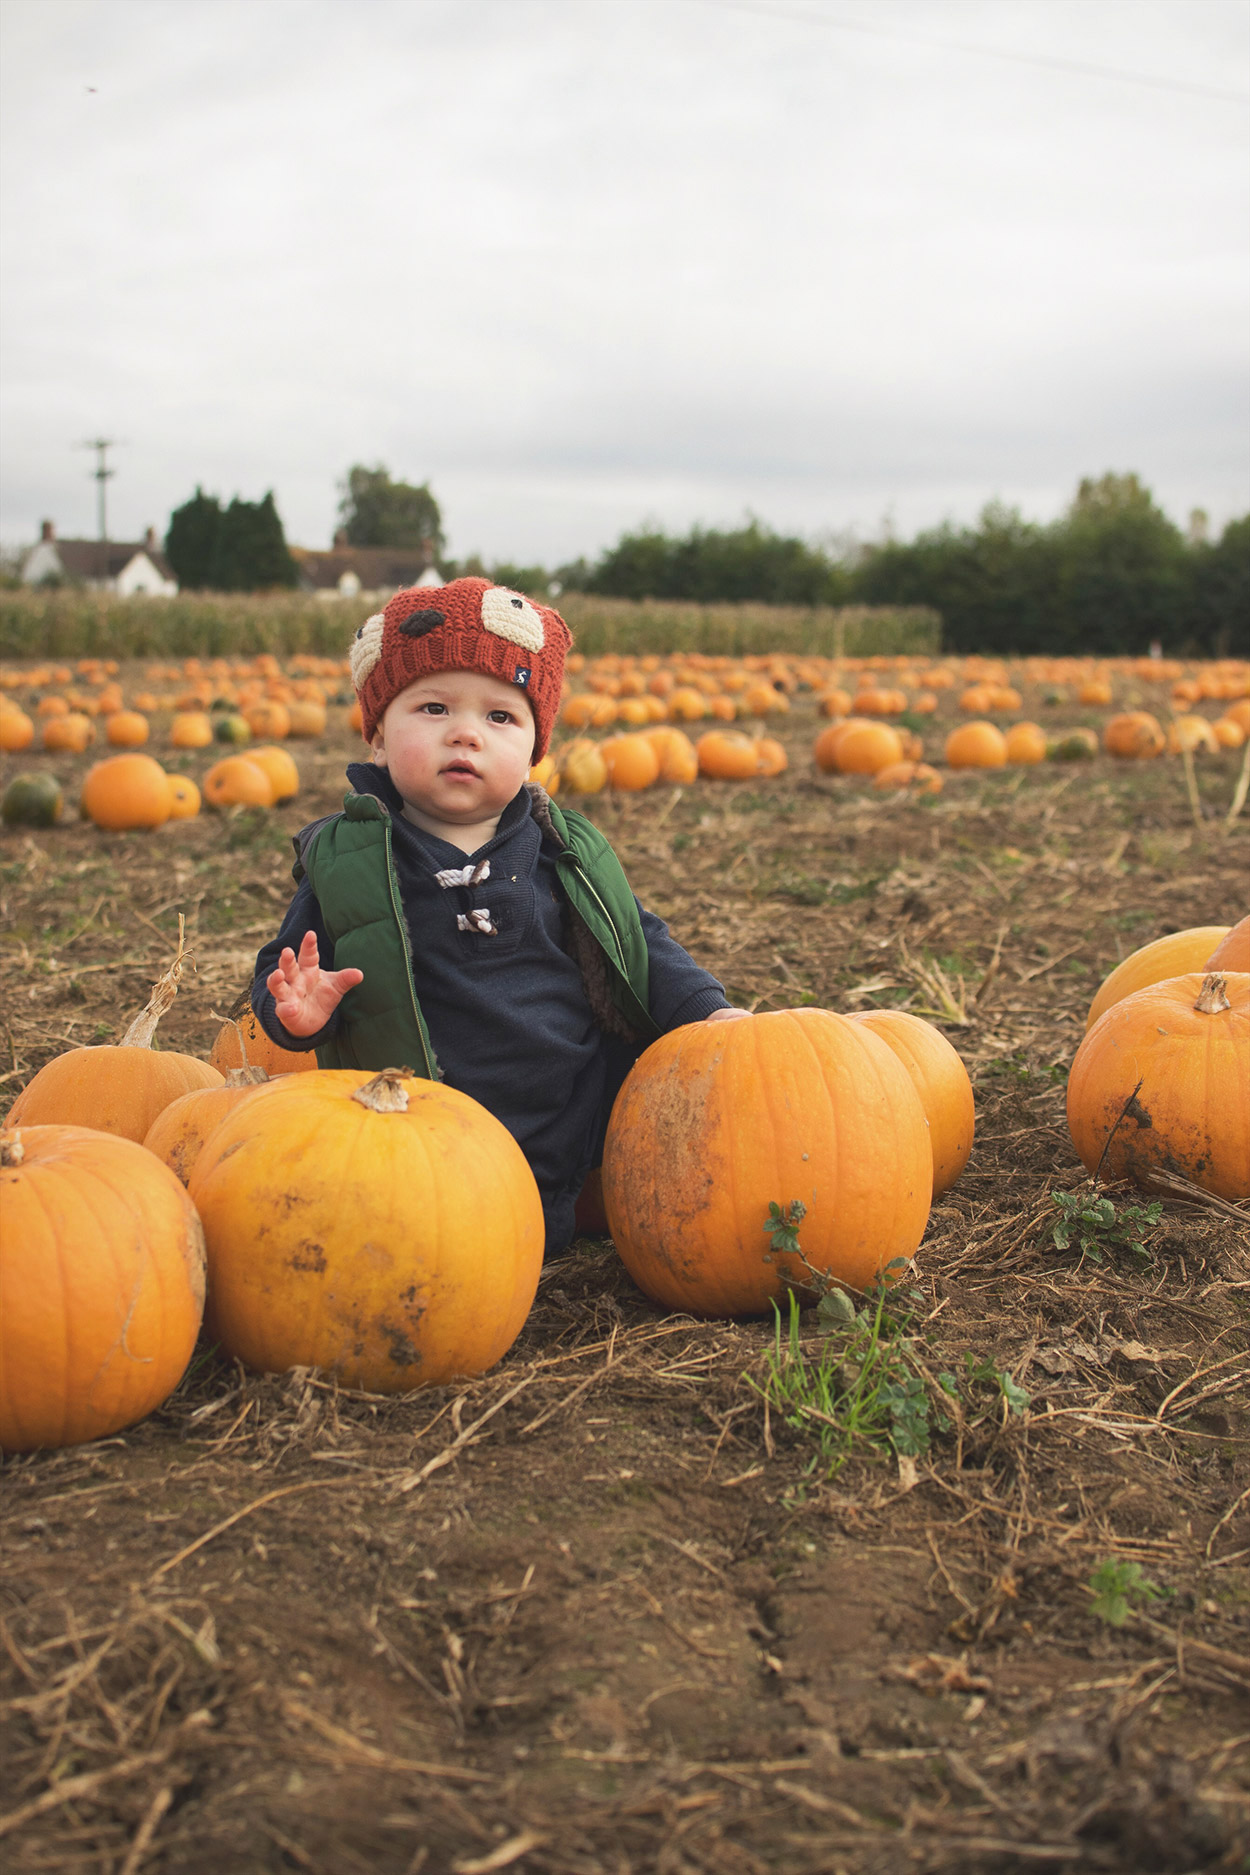 A family with two young boys wearing Joules fox hat and Osh Kosh stripy dungarees visiting Millets Farm, Oxfordshire, picking pumpkins for Halloween